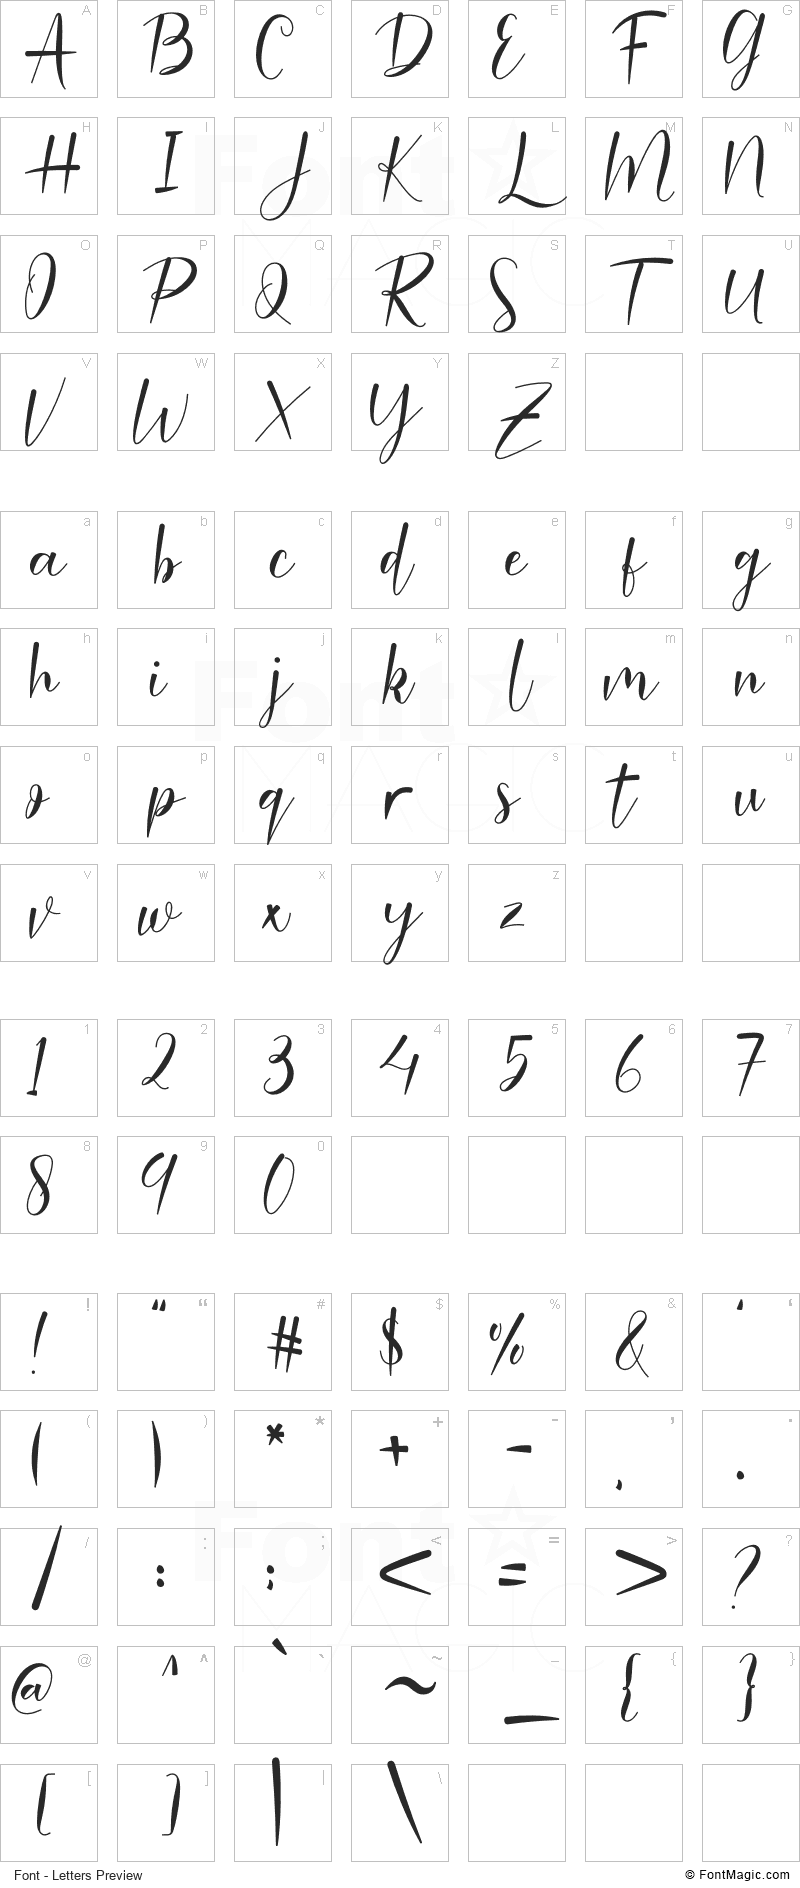 Malinda Font - All Latters Preview Chart